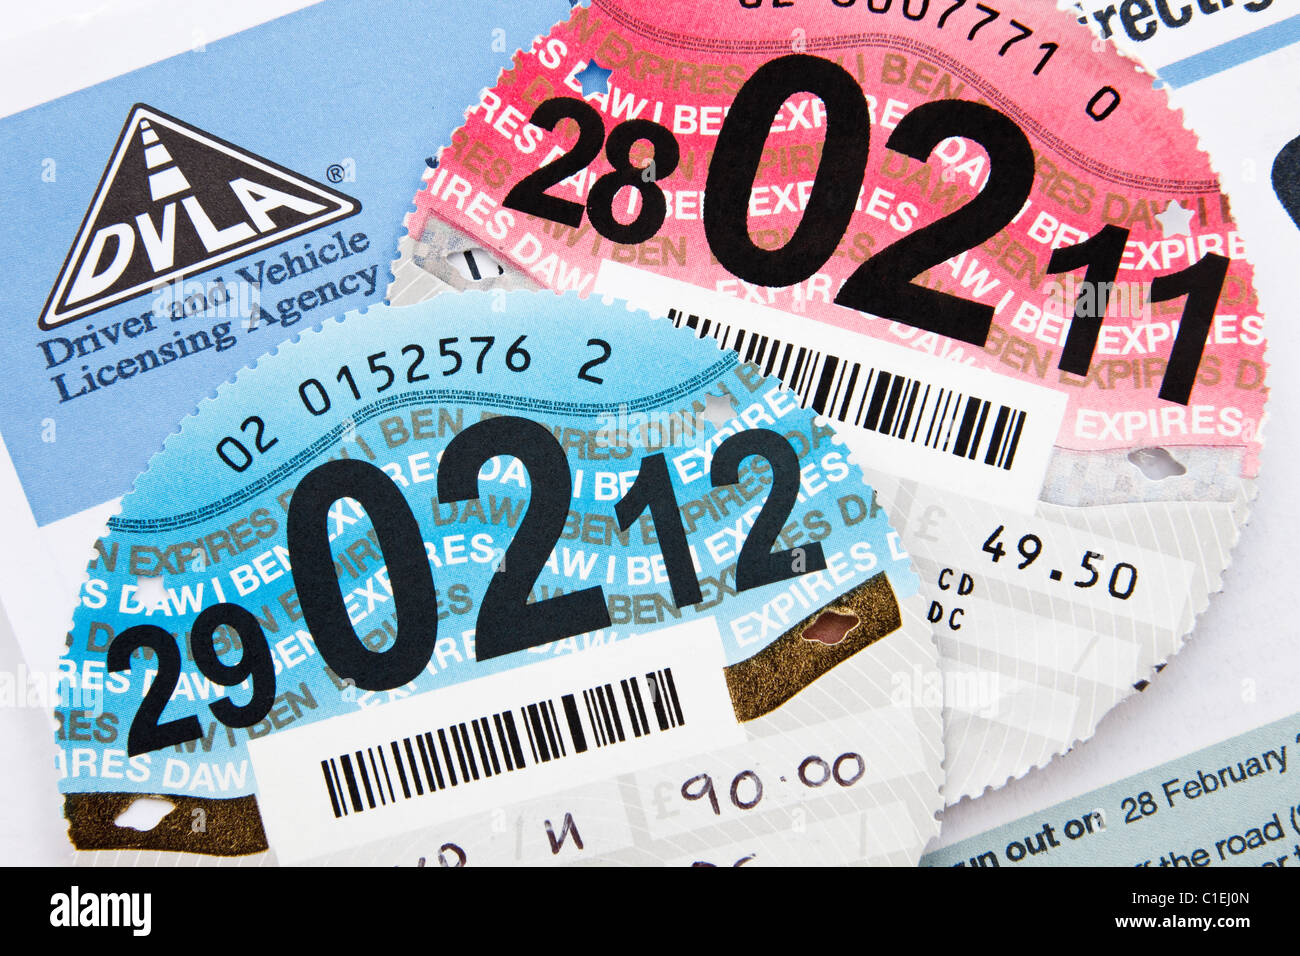 Dvla Uk Stock Photos Amp Dvla Uk Stock Images Alamy